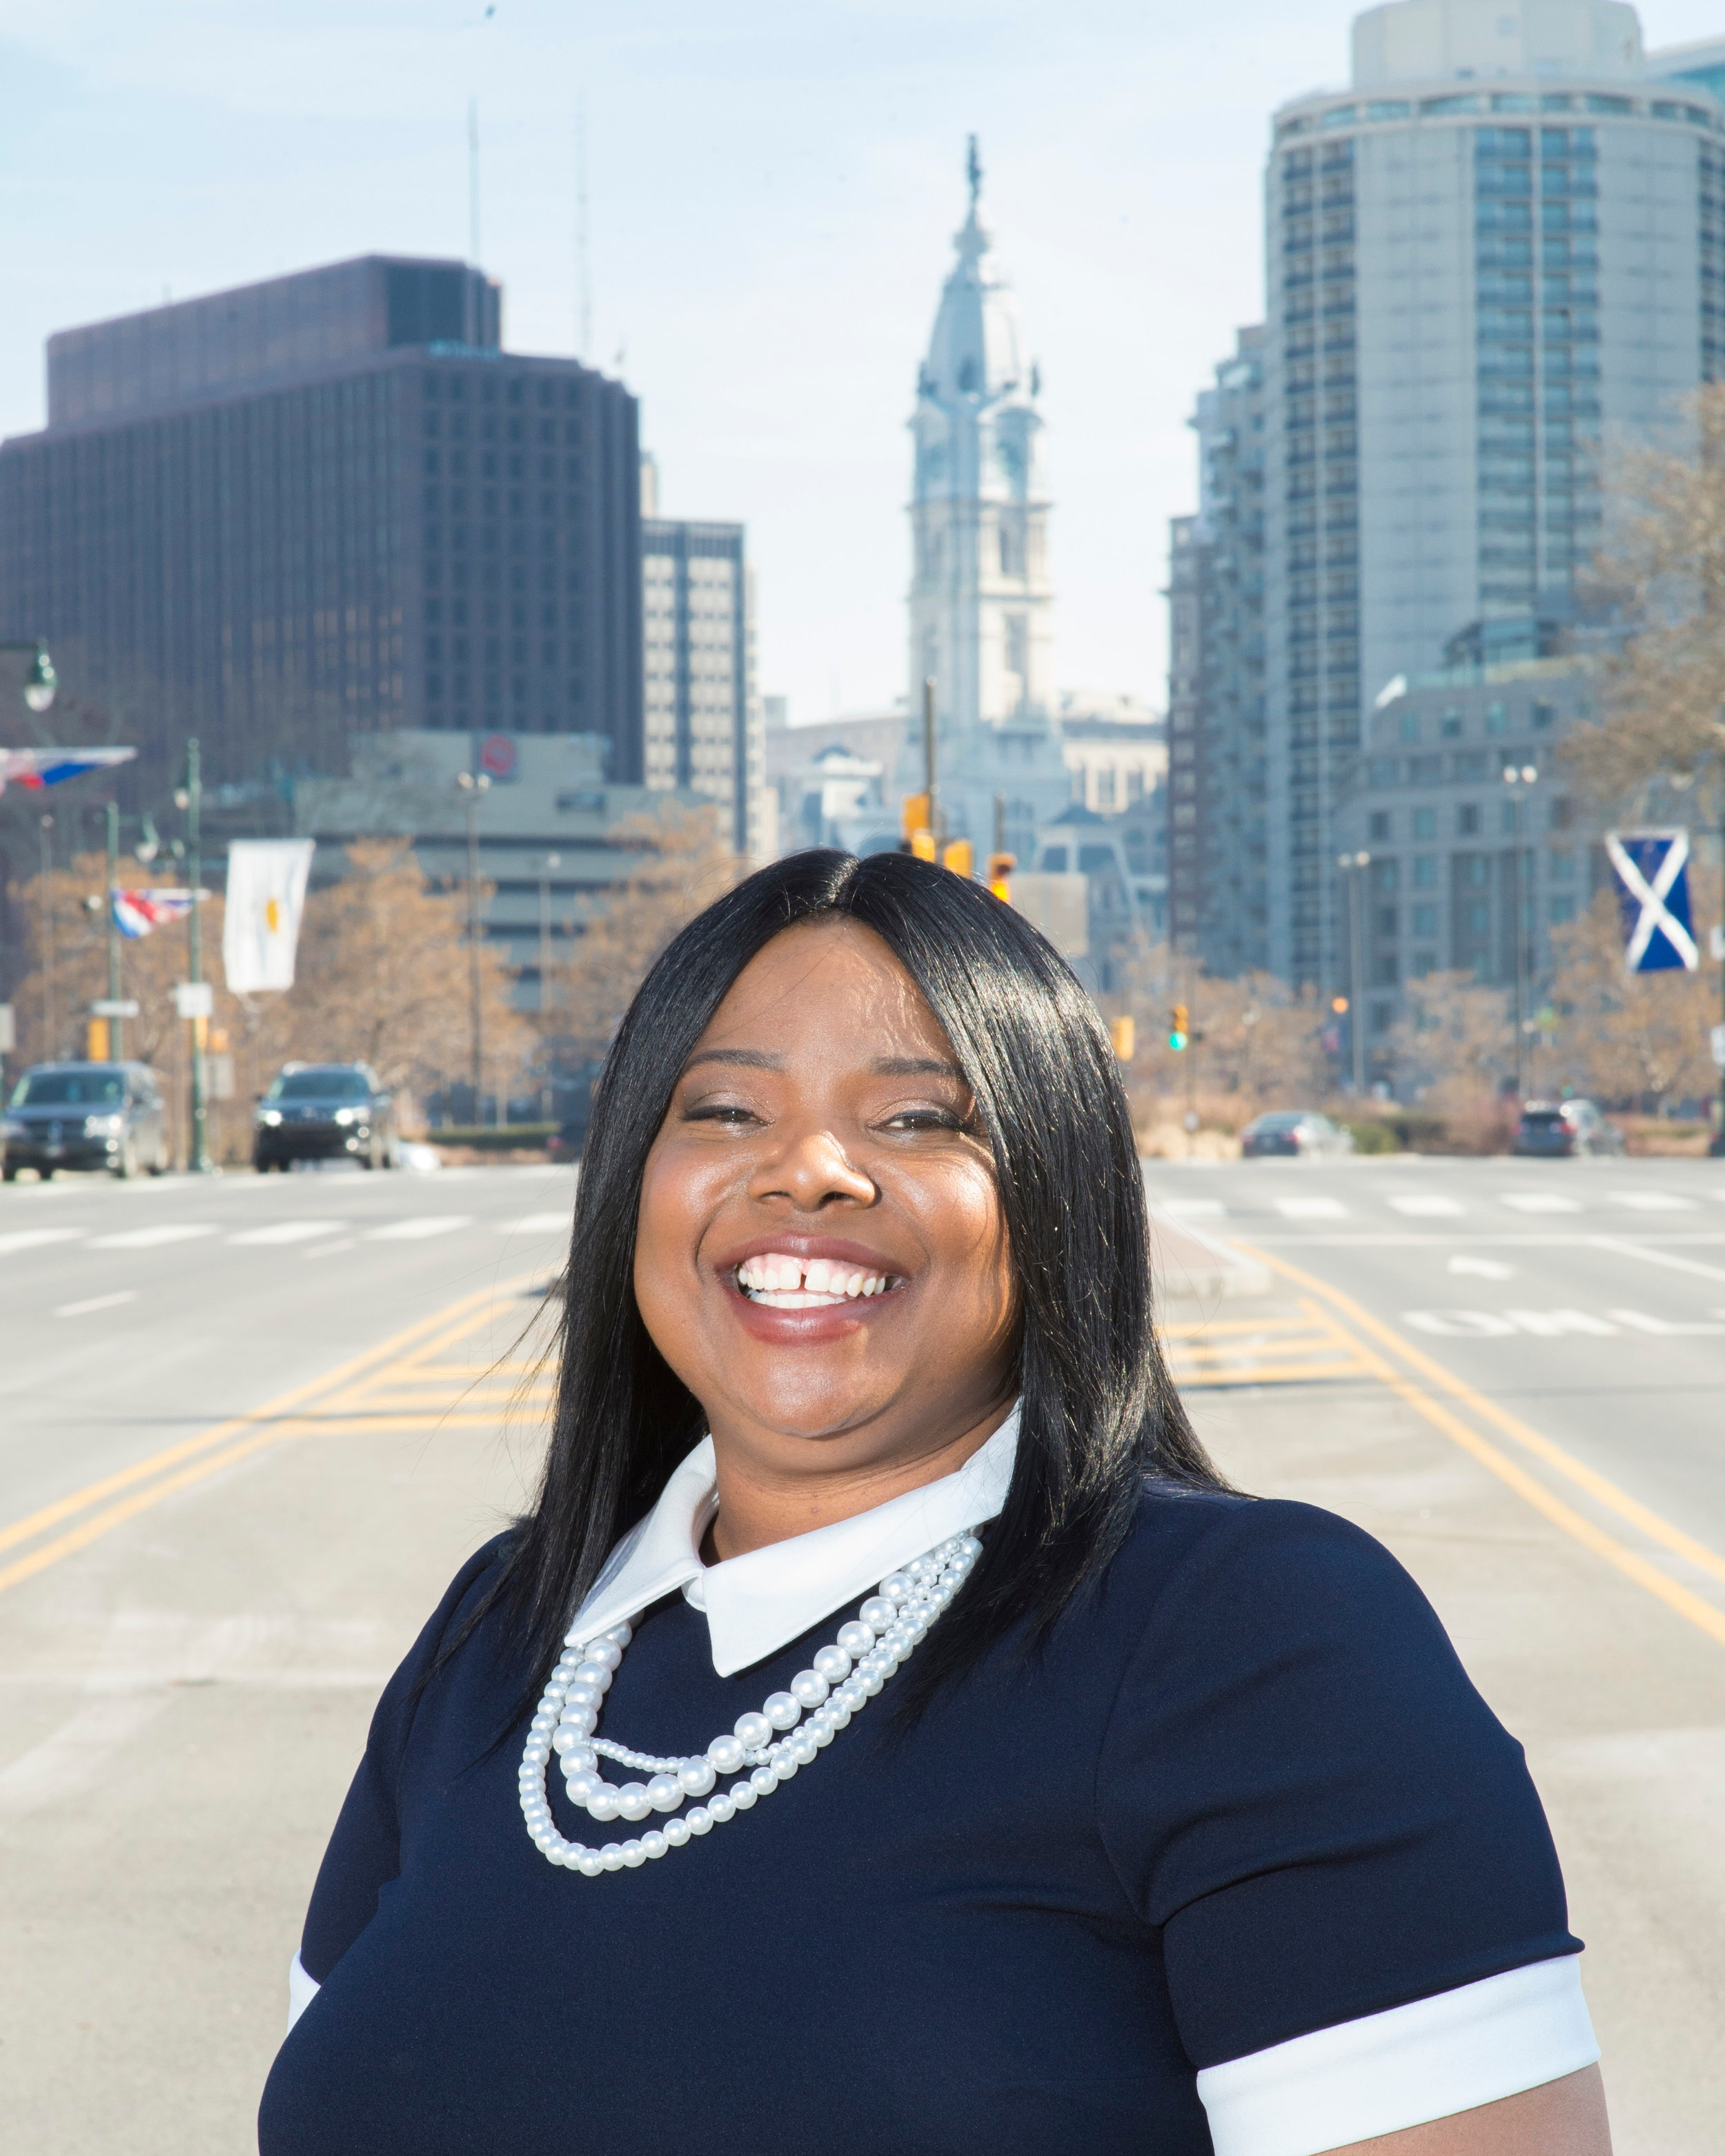 Carla Cain wants to push voter registration and turnout as City Commissioner.